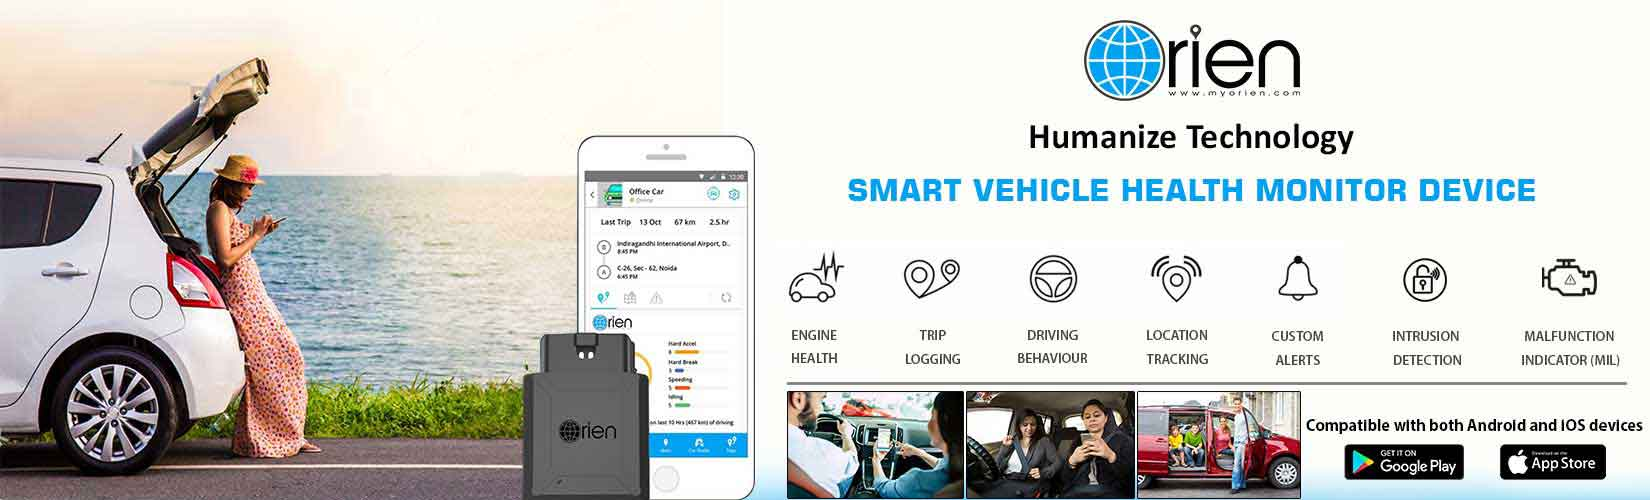 myOrien Car Health Monitor Device